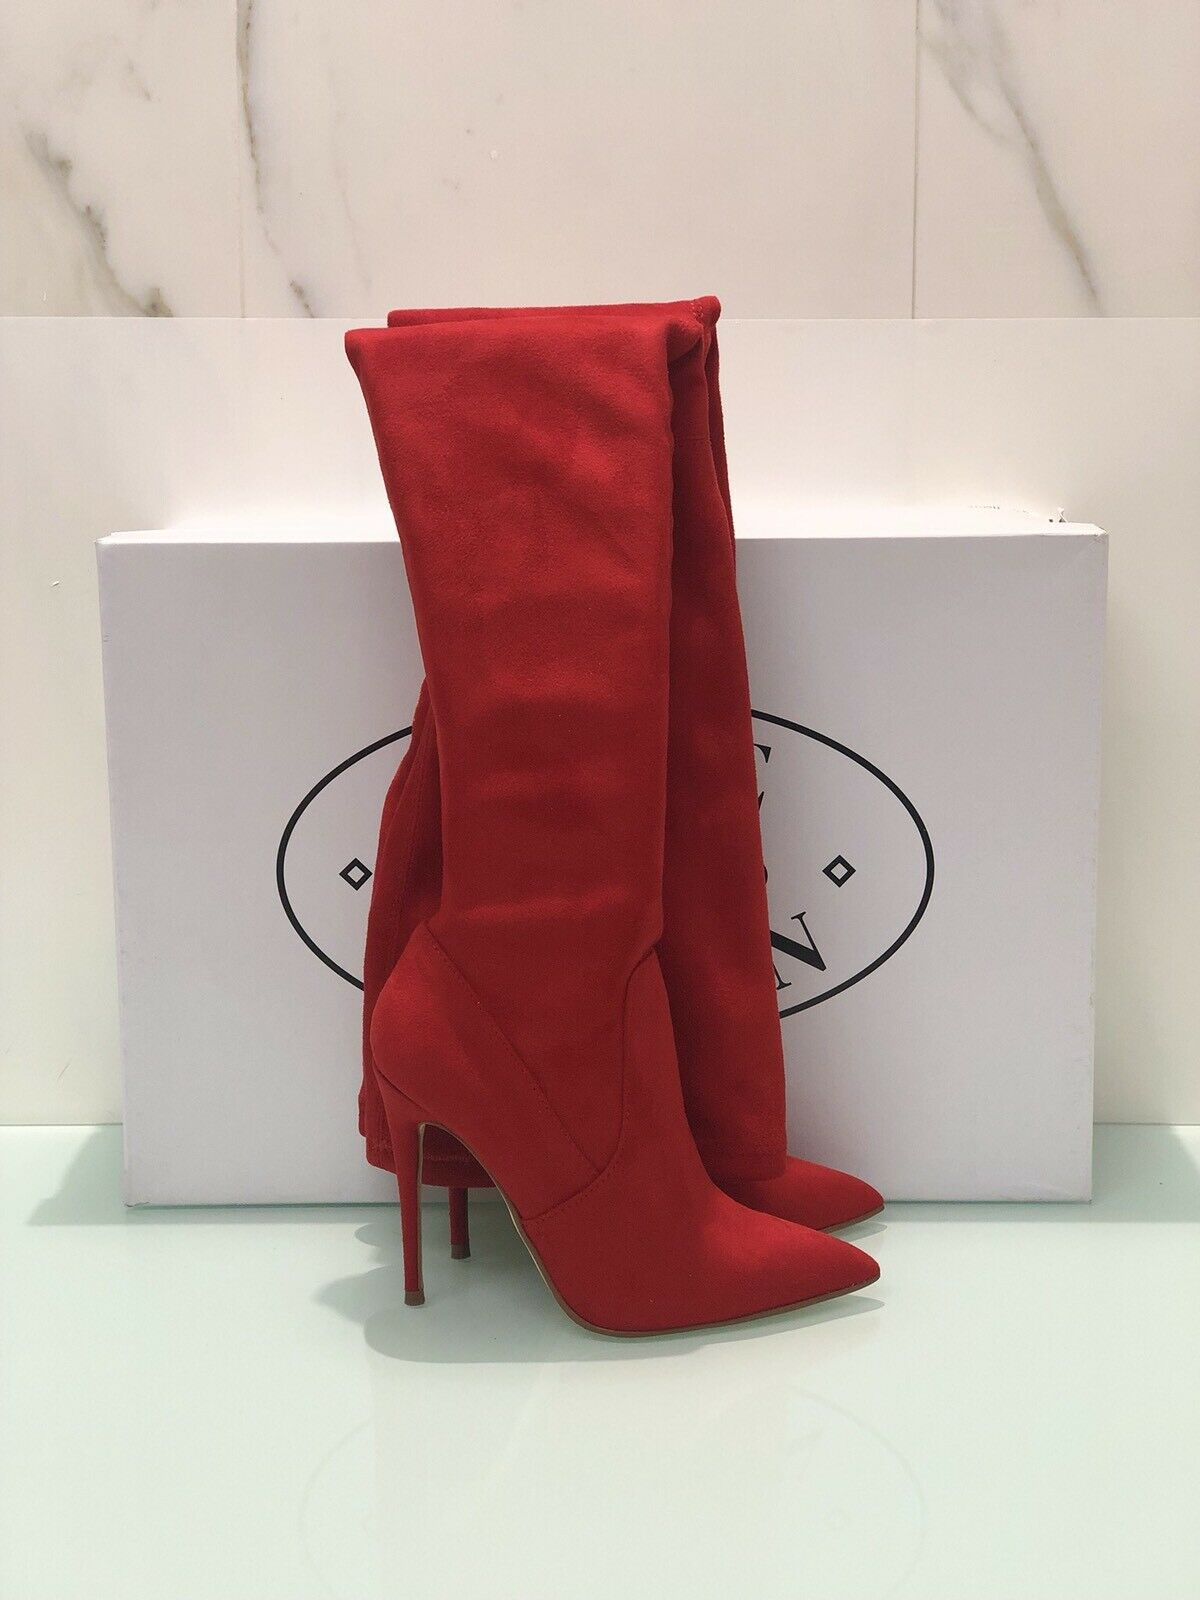 Boot Cuissard Knee Length Steve Madden Dominique Woman Red